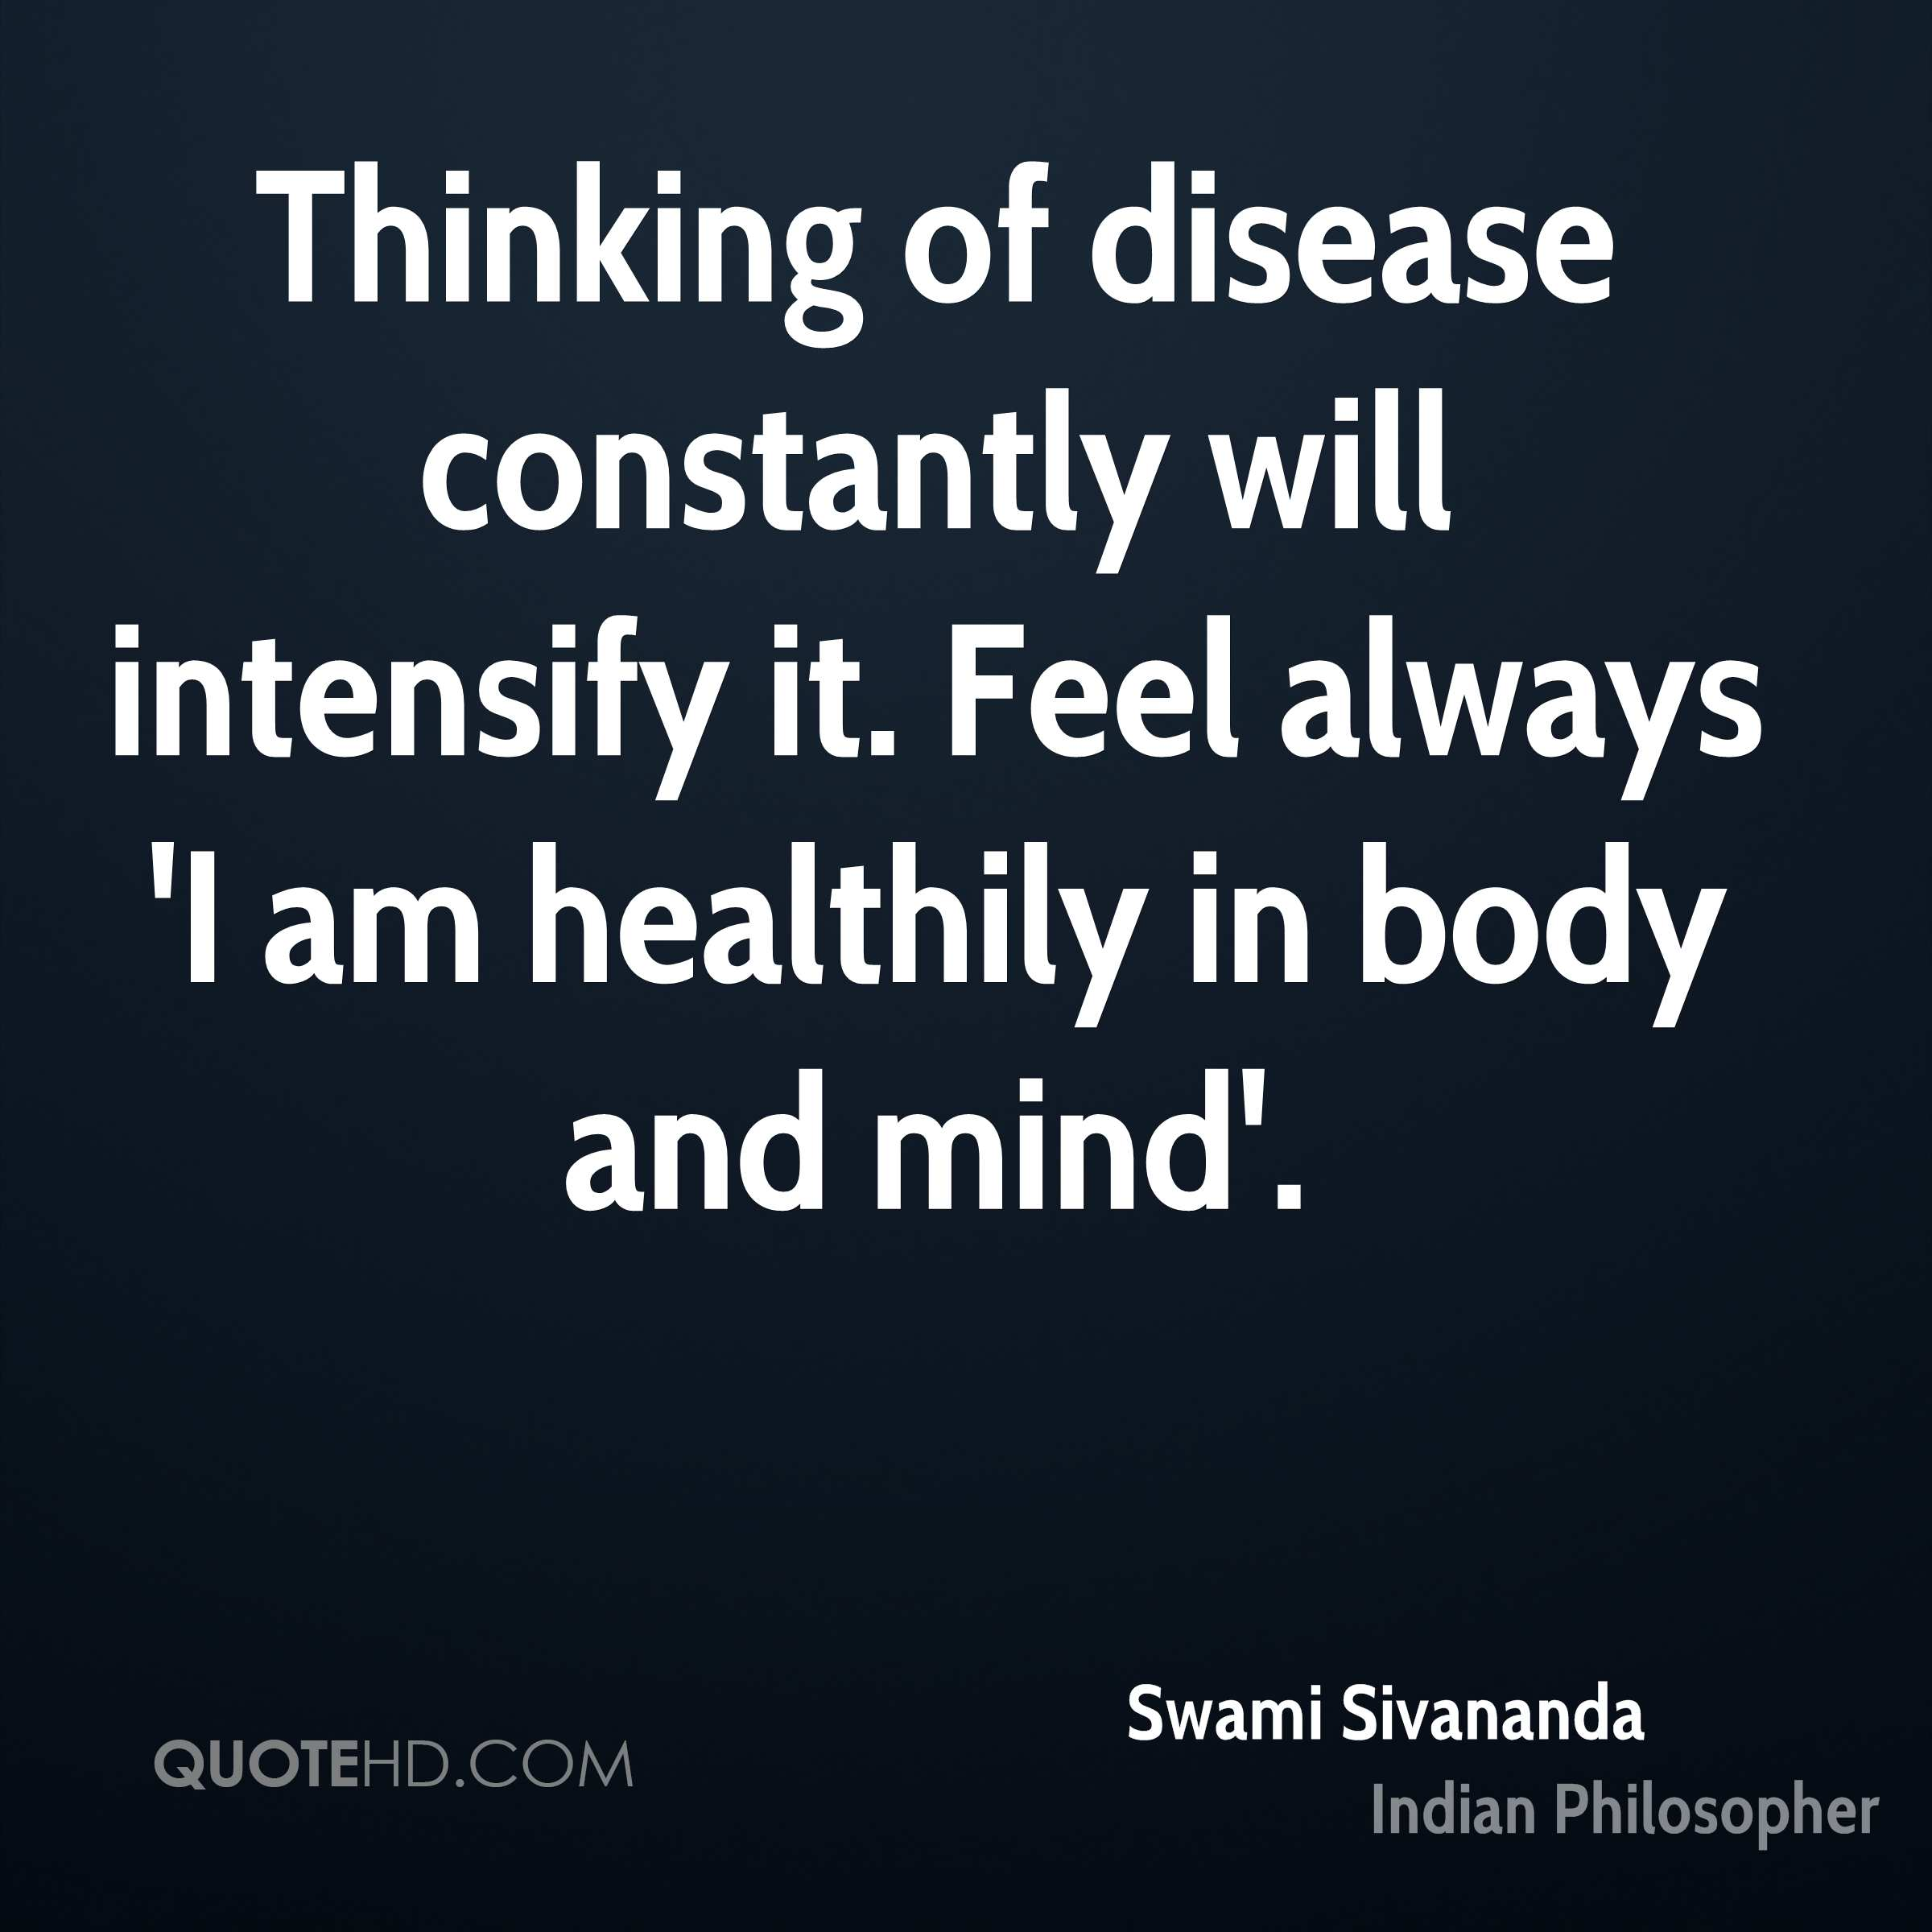 Thinking of disease constantly will intensify it. Feel always 'I am healthily in body and mind'.